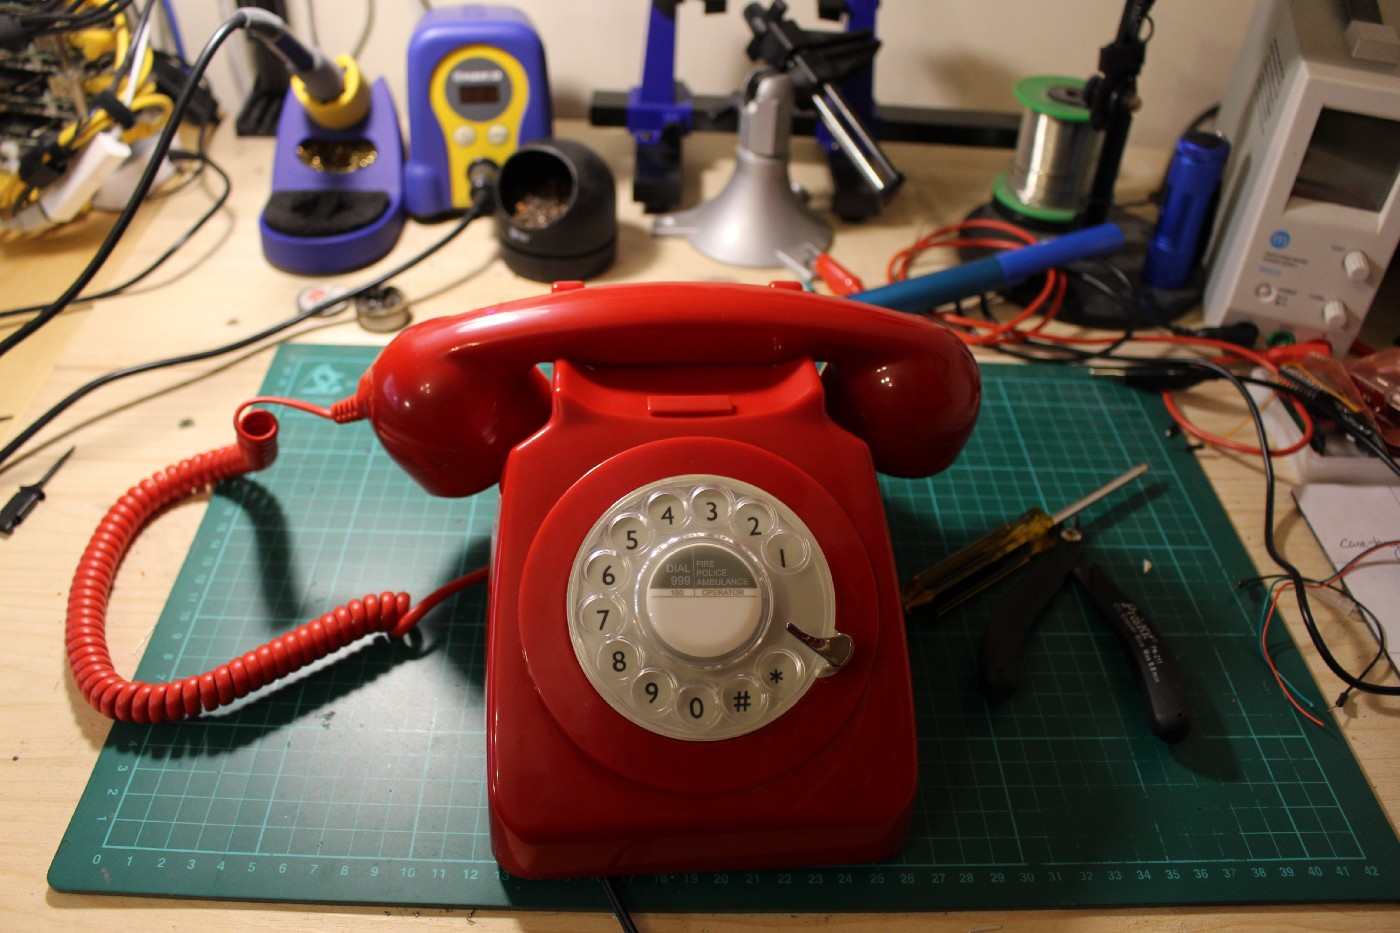 A Retro Rotary Phone Powered by AIY Projects and the Raspberry Pi on